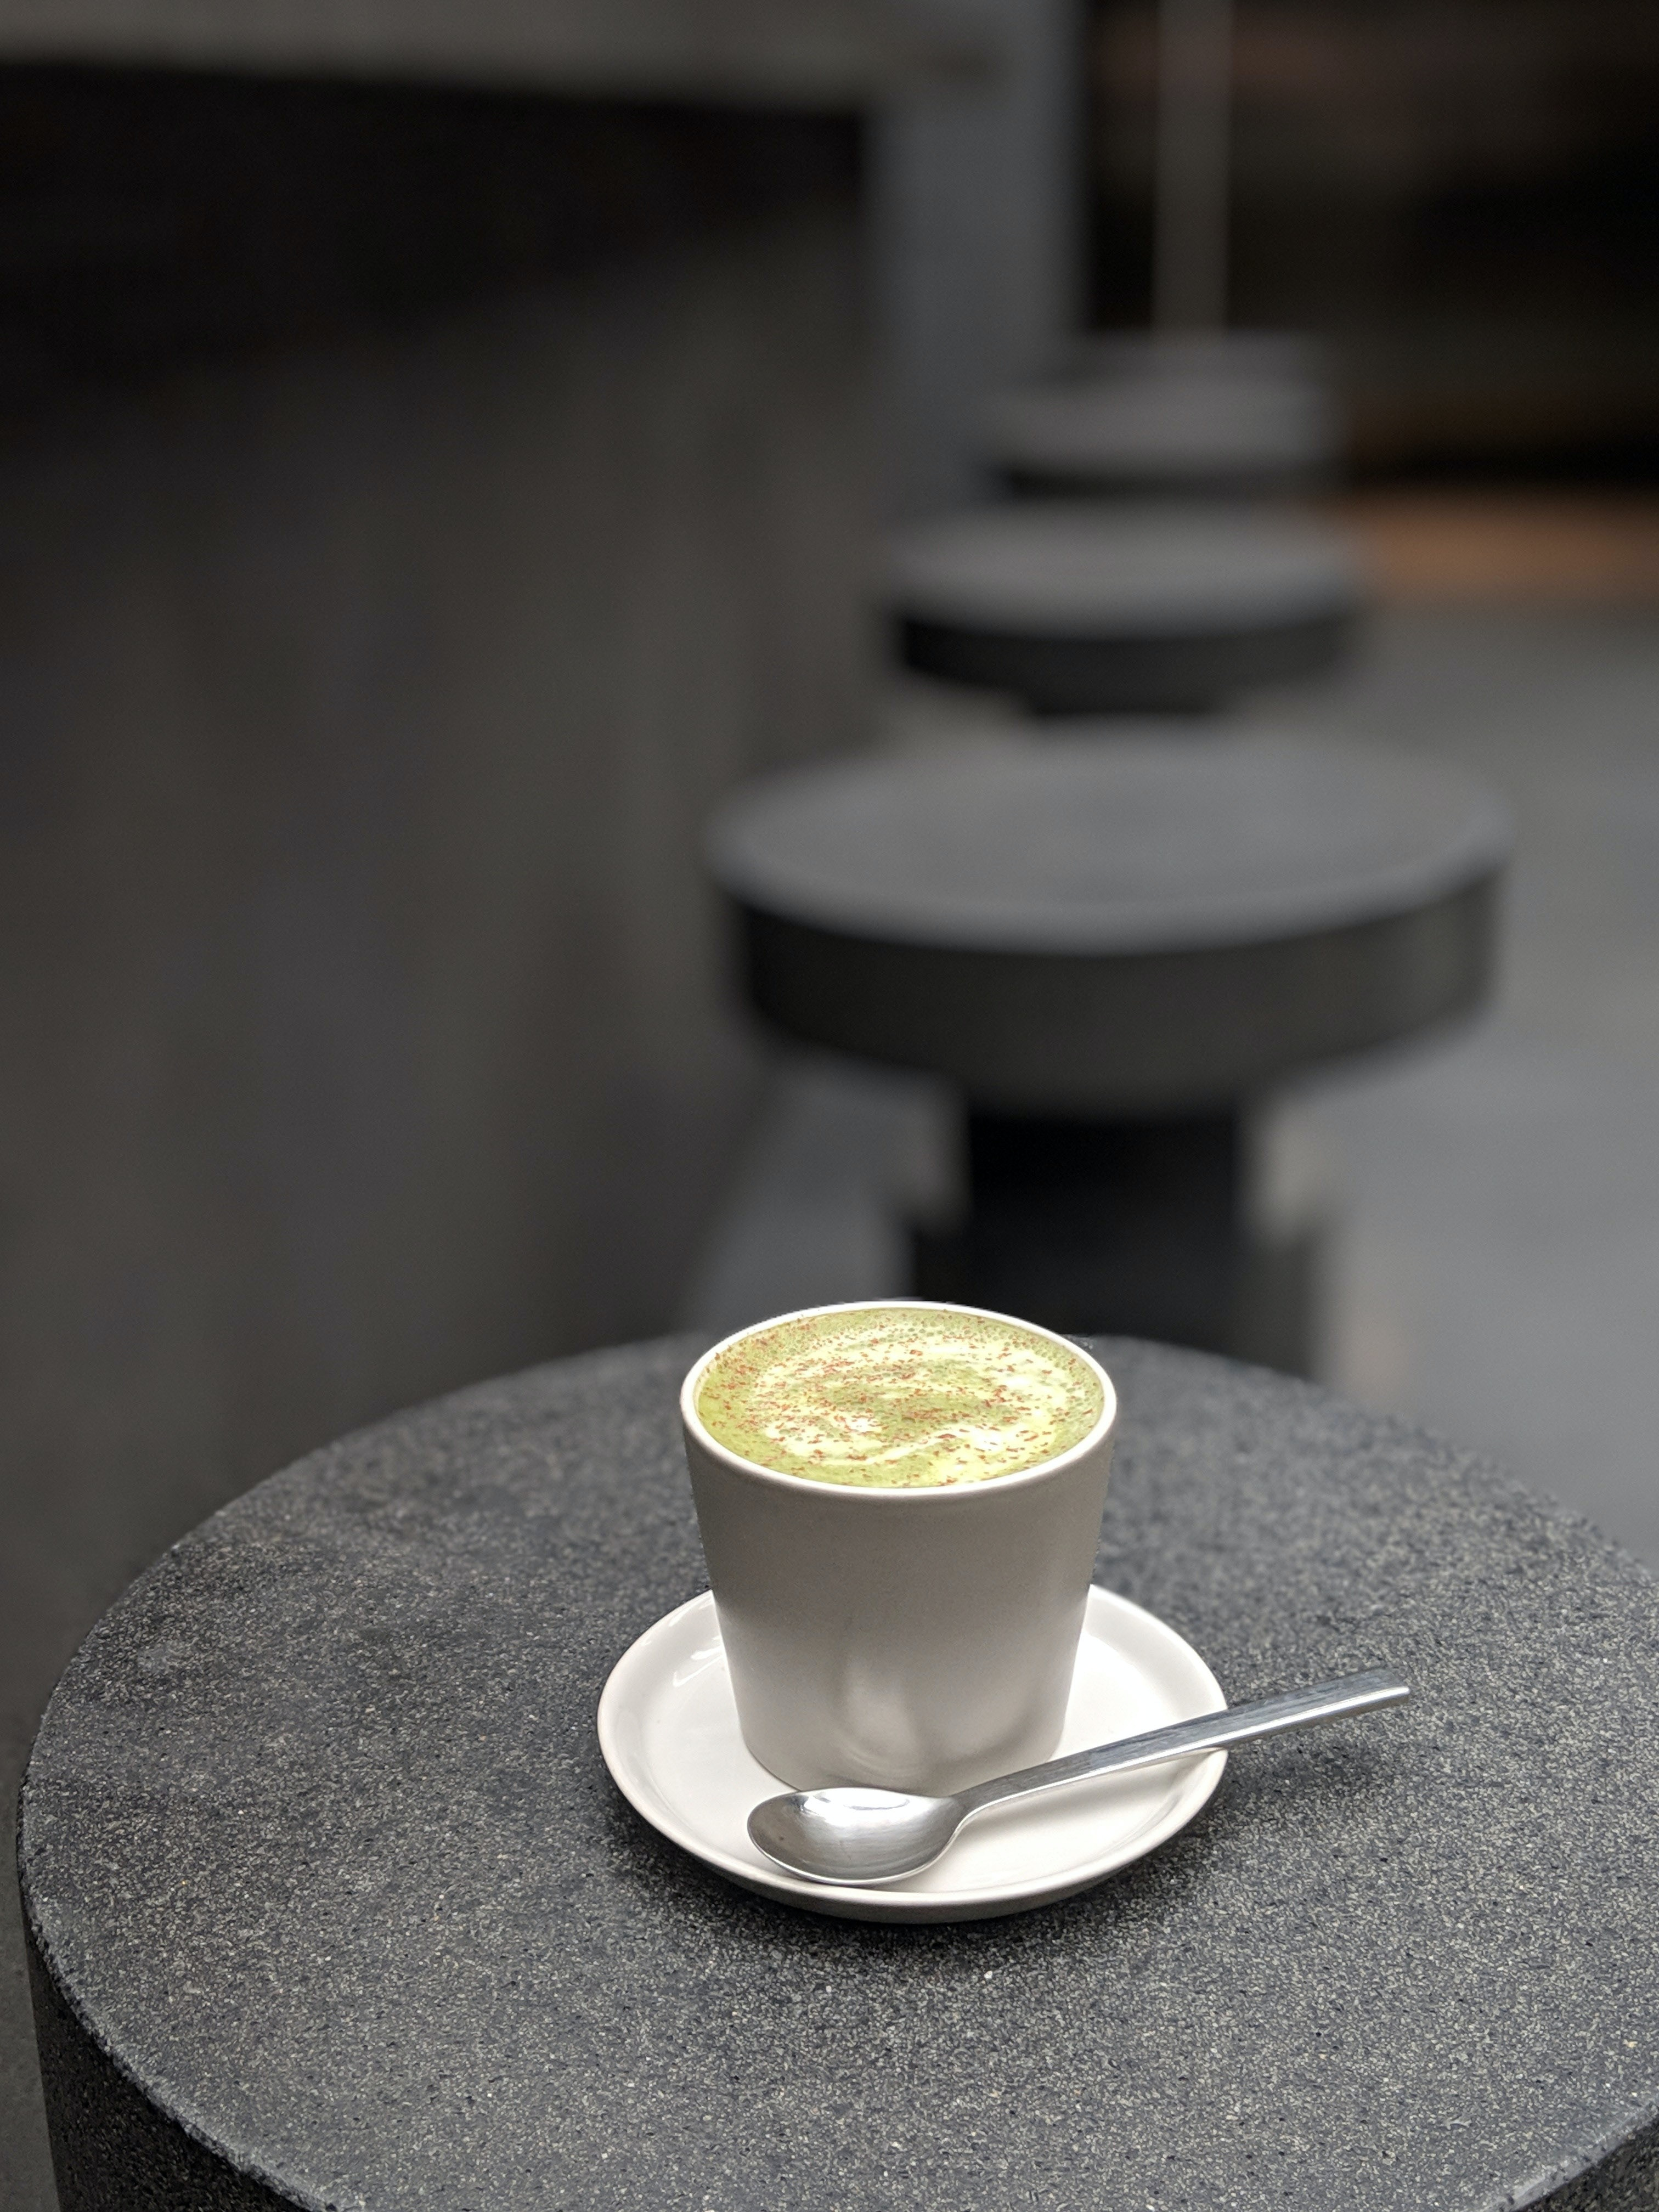 SSENSE Cafe in Montreal is a must see! With chic black concrete interior and amazing lattes, it's one of the top 10 Most Instagrammable Spots in Montreal